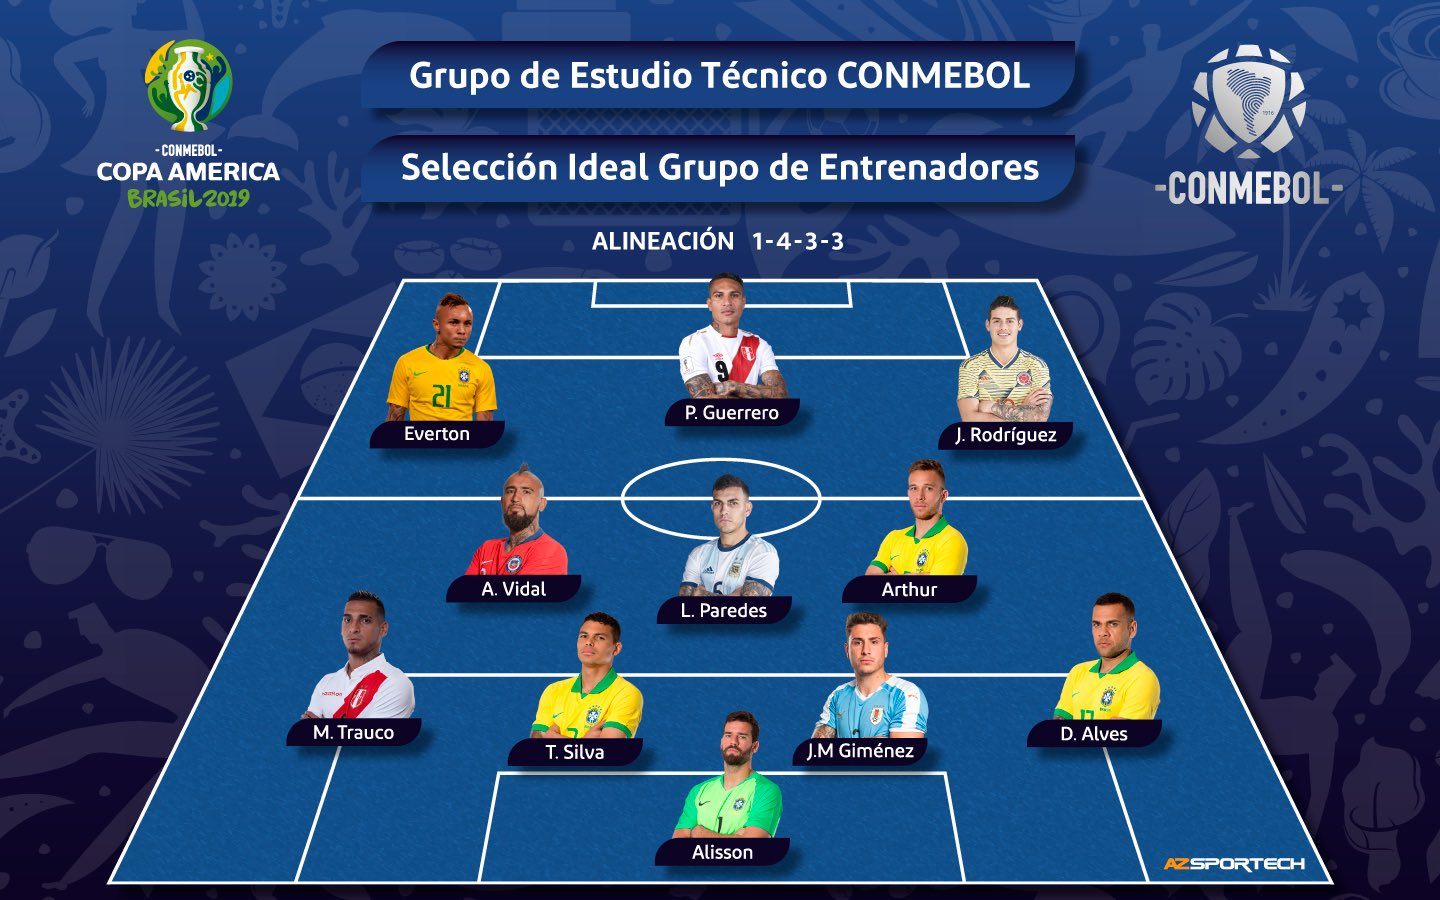 Top 11 players of the Copa America 2019